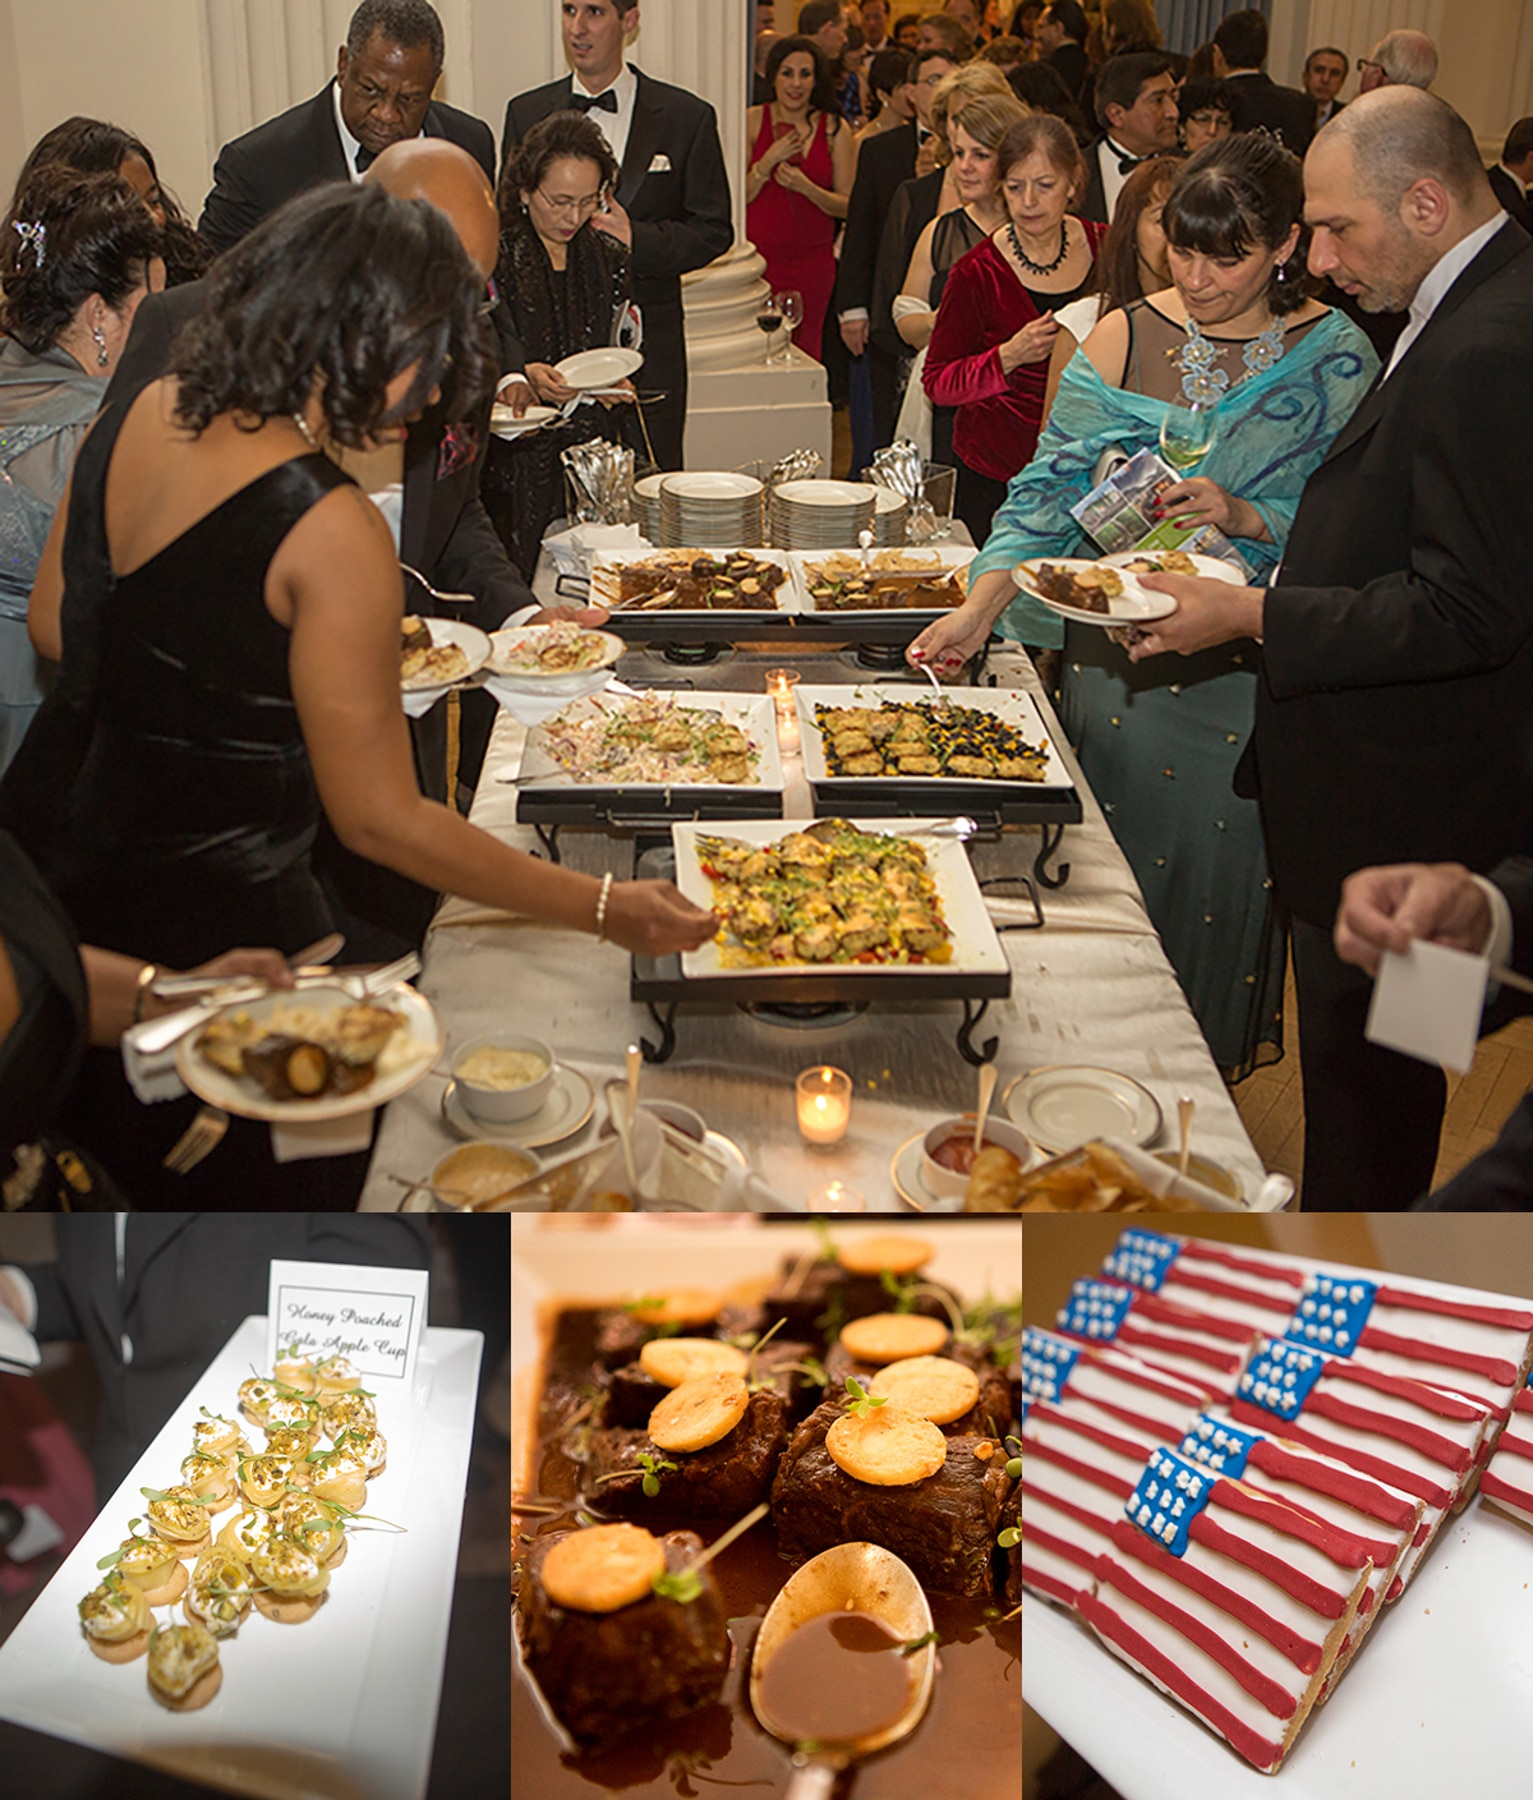 Four photos of food on buffet table and people serving themselves (State Dept./D.A. Peterson)